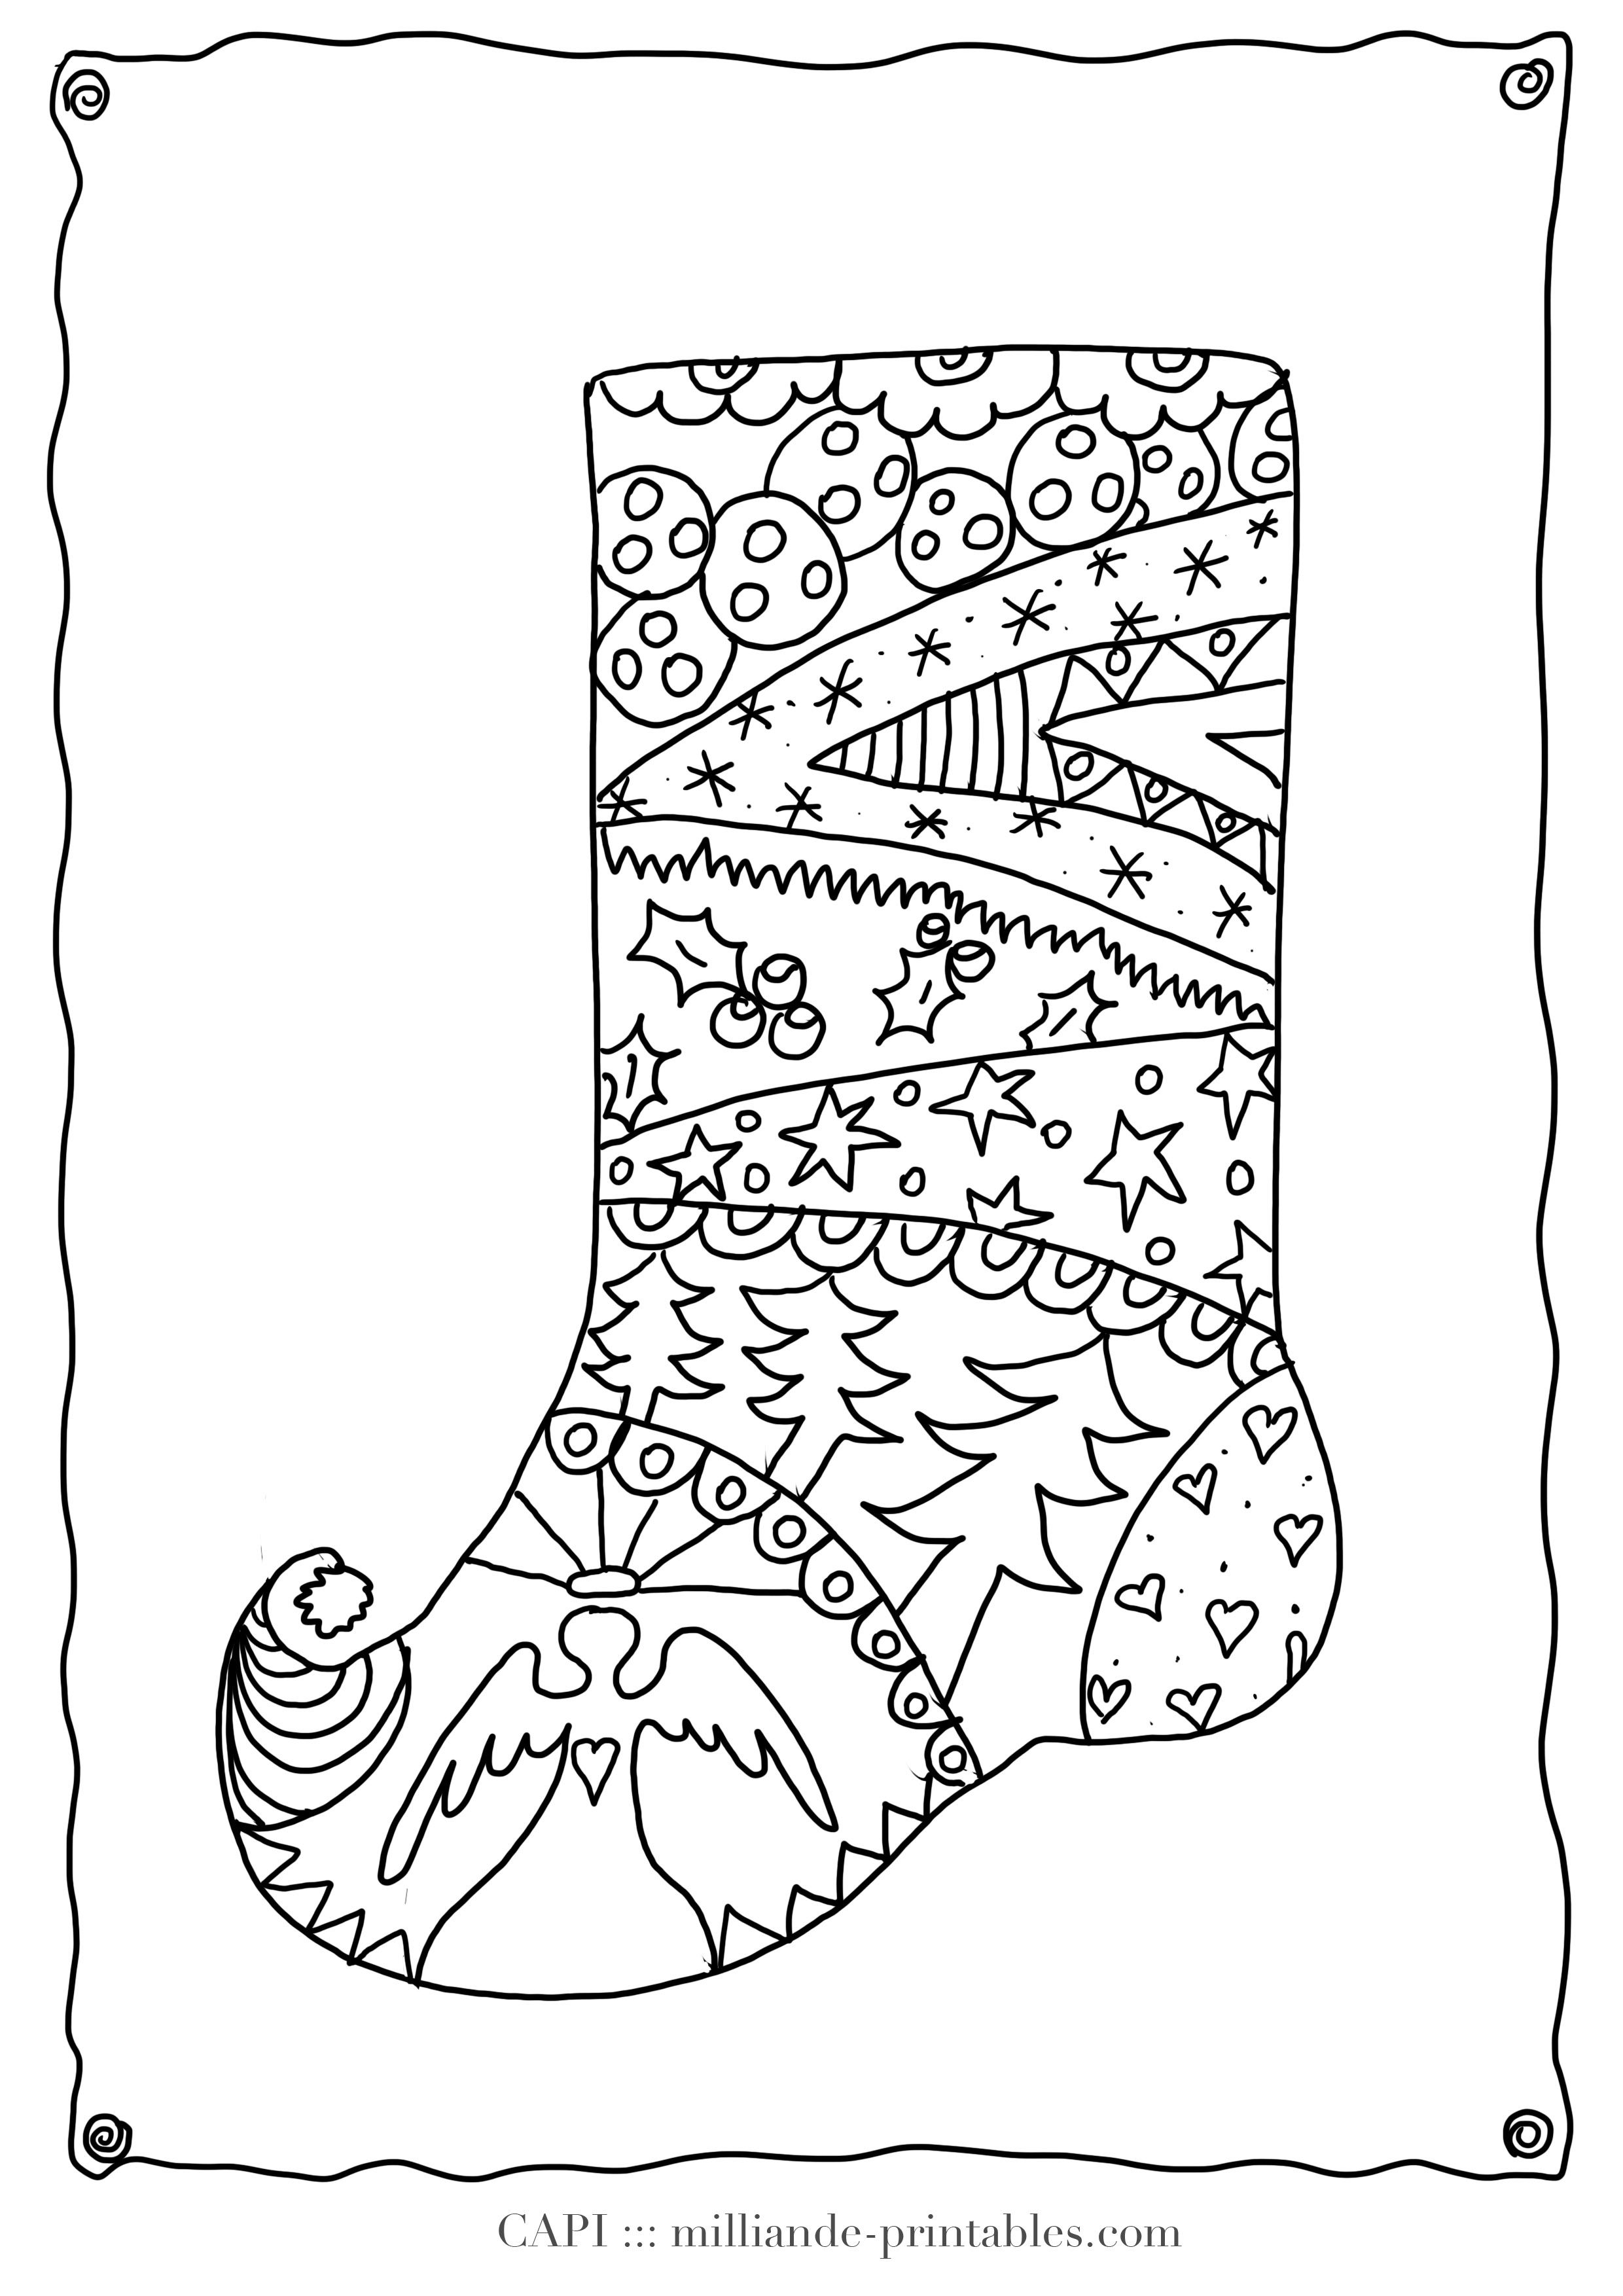 Christmas Coloring Pages To Print For Adults With Detailed Bing Images Design Pinterest